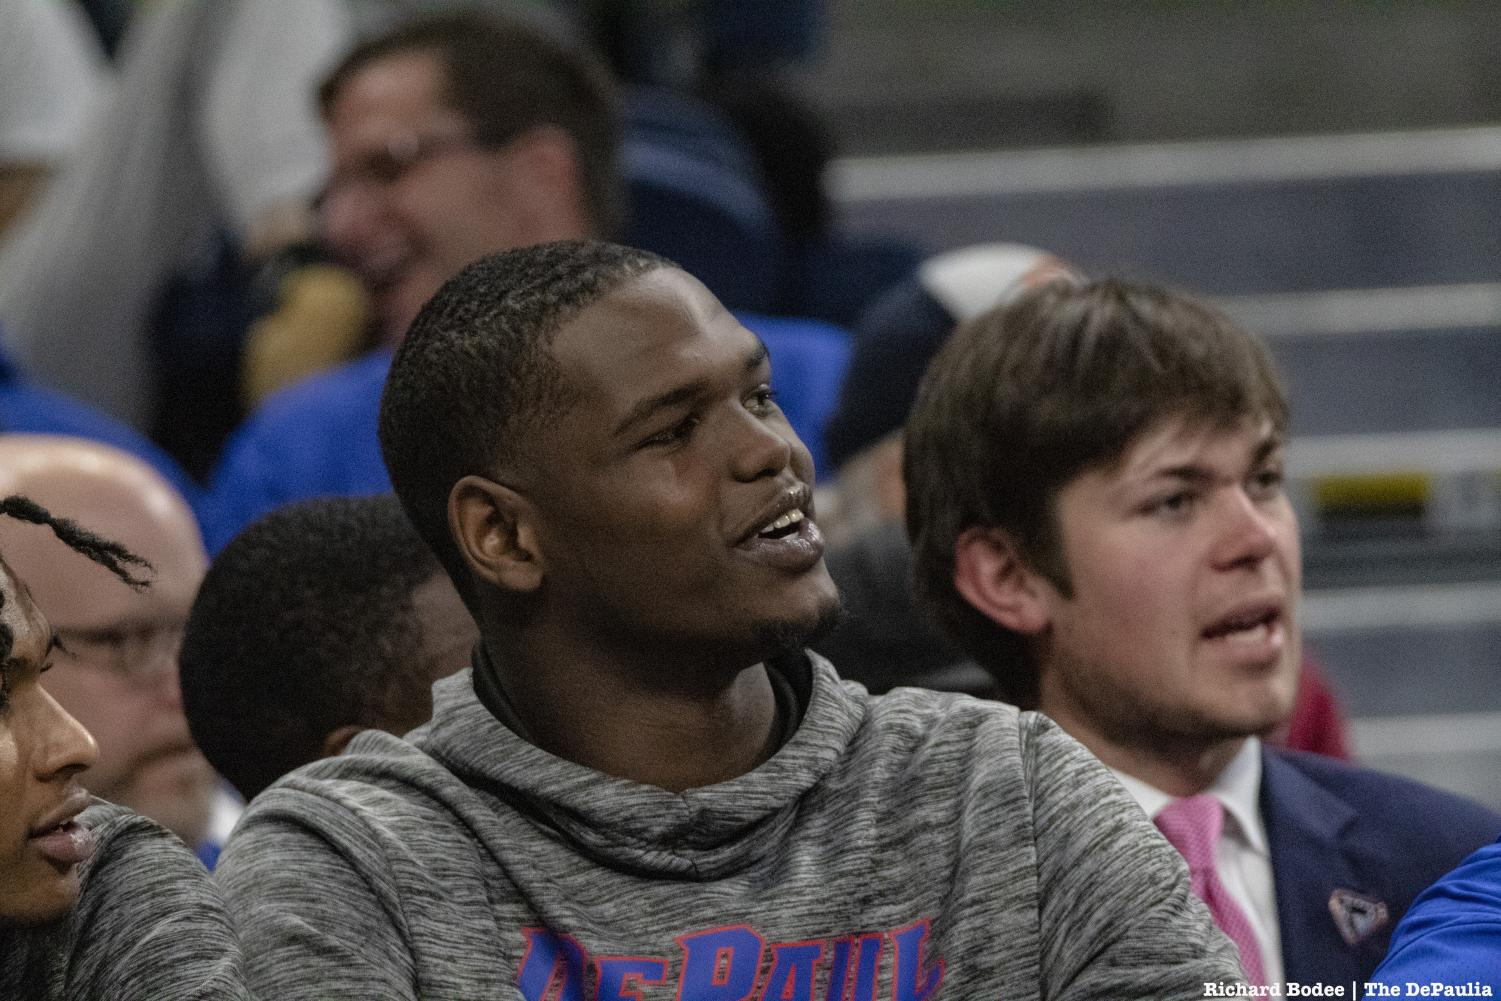 DePaul's newest addition Carte'Are Gordon was in attendance for DePaul's game against Butler Wednesday night. Gordon announced his commitment on Jan. 15.